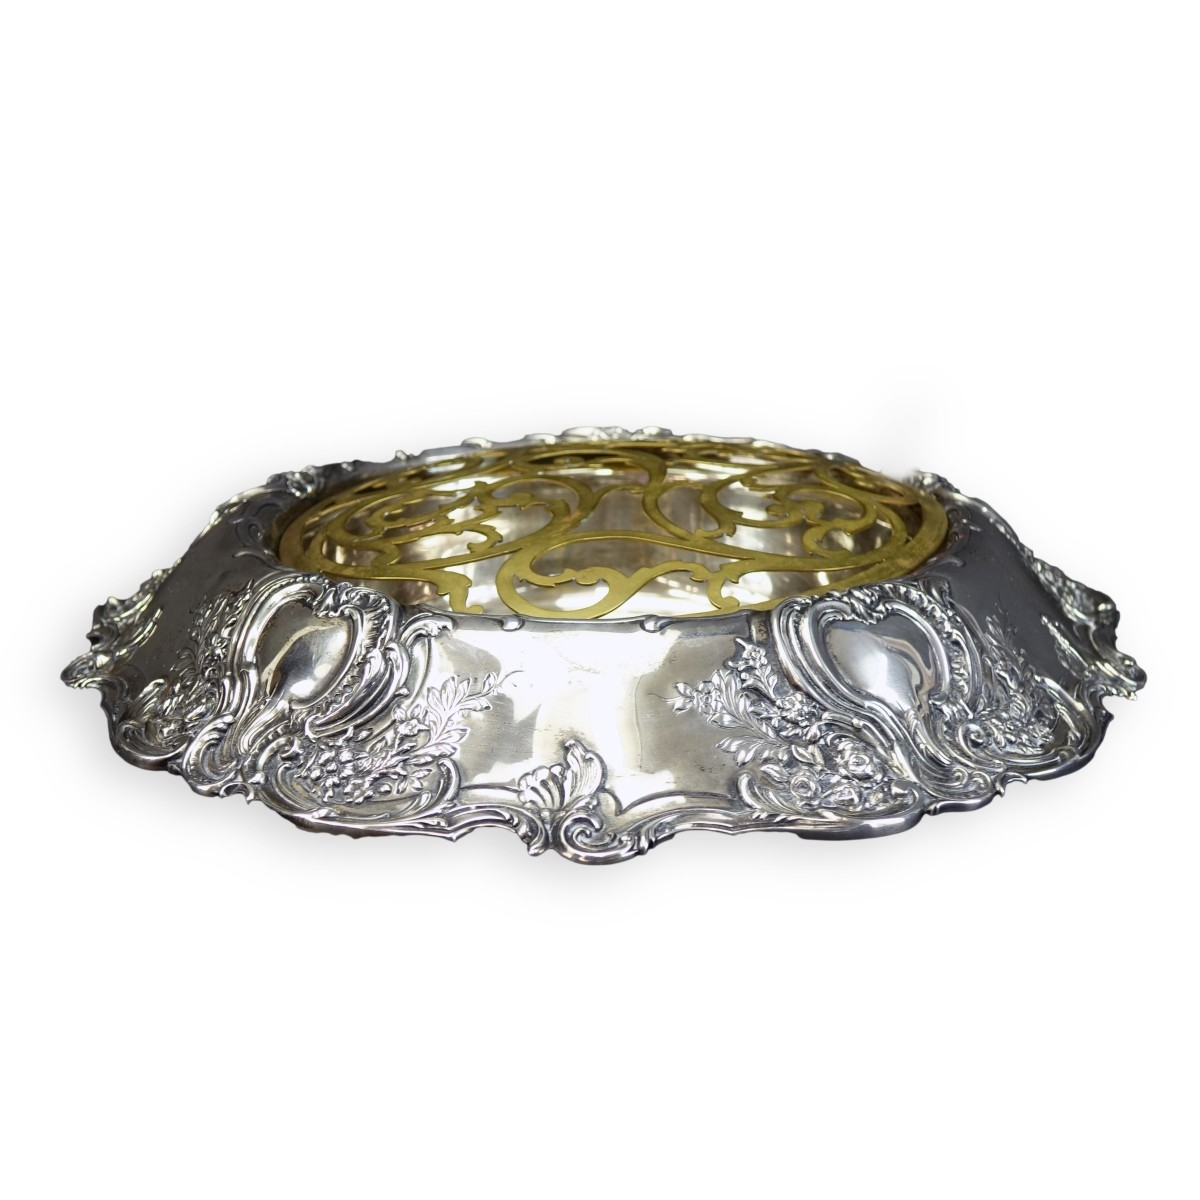 Tiffany Sterling Centerpiece Bowl with Frog